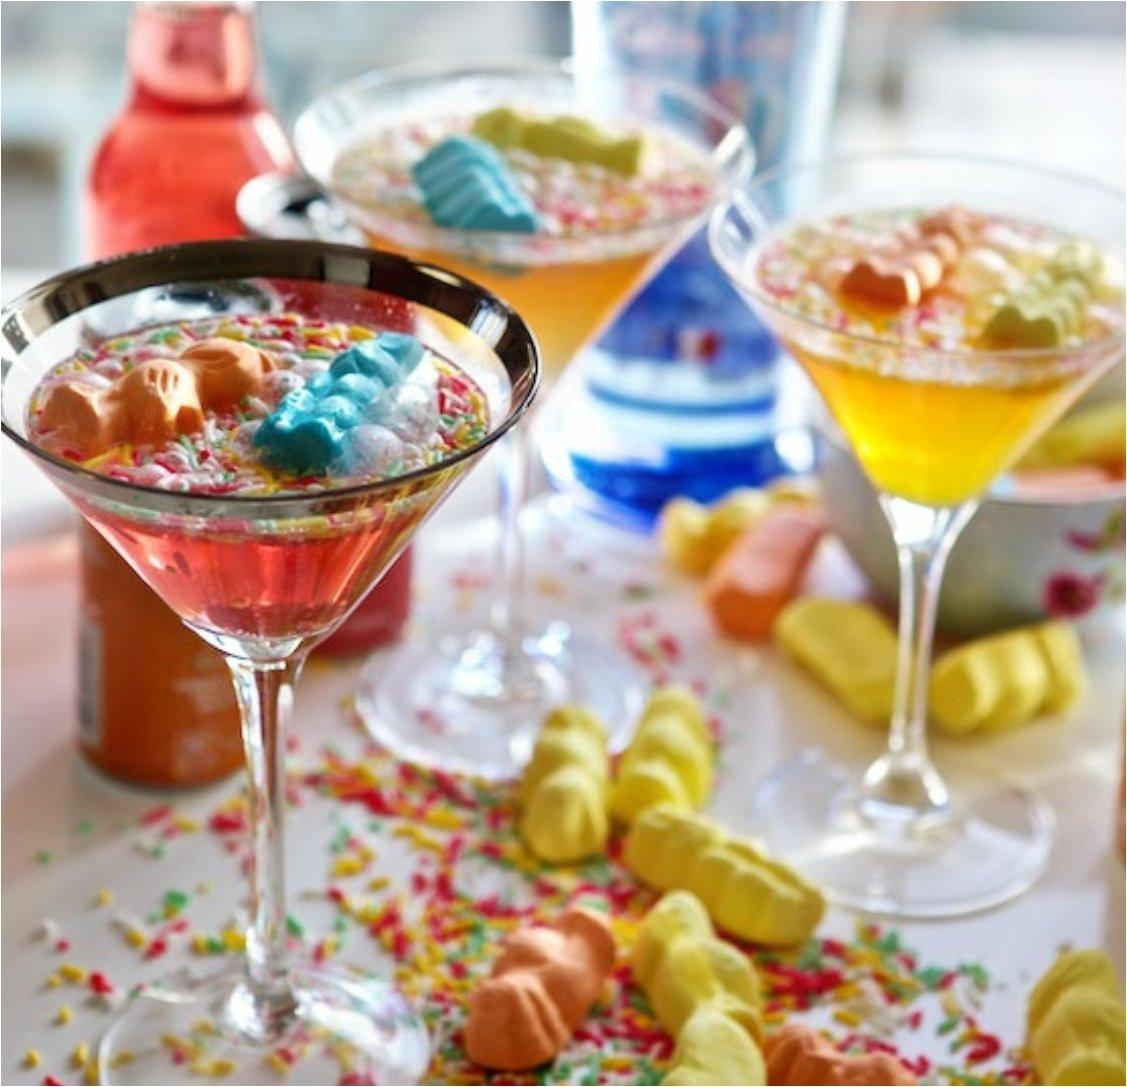 18 Cocktail Recipes To Spice Up Your Easter Party